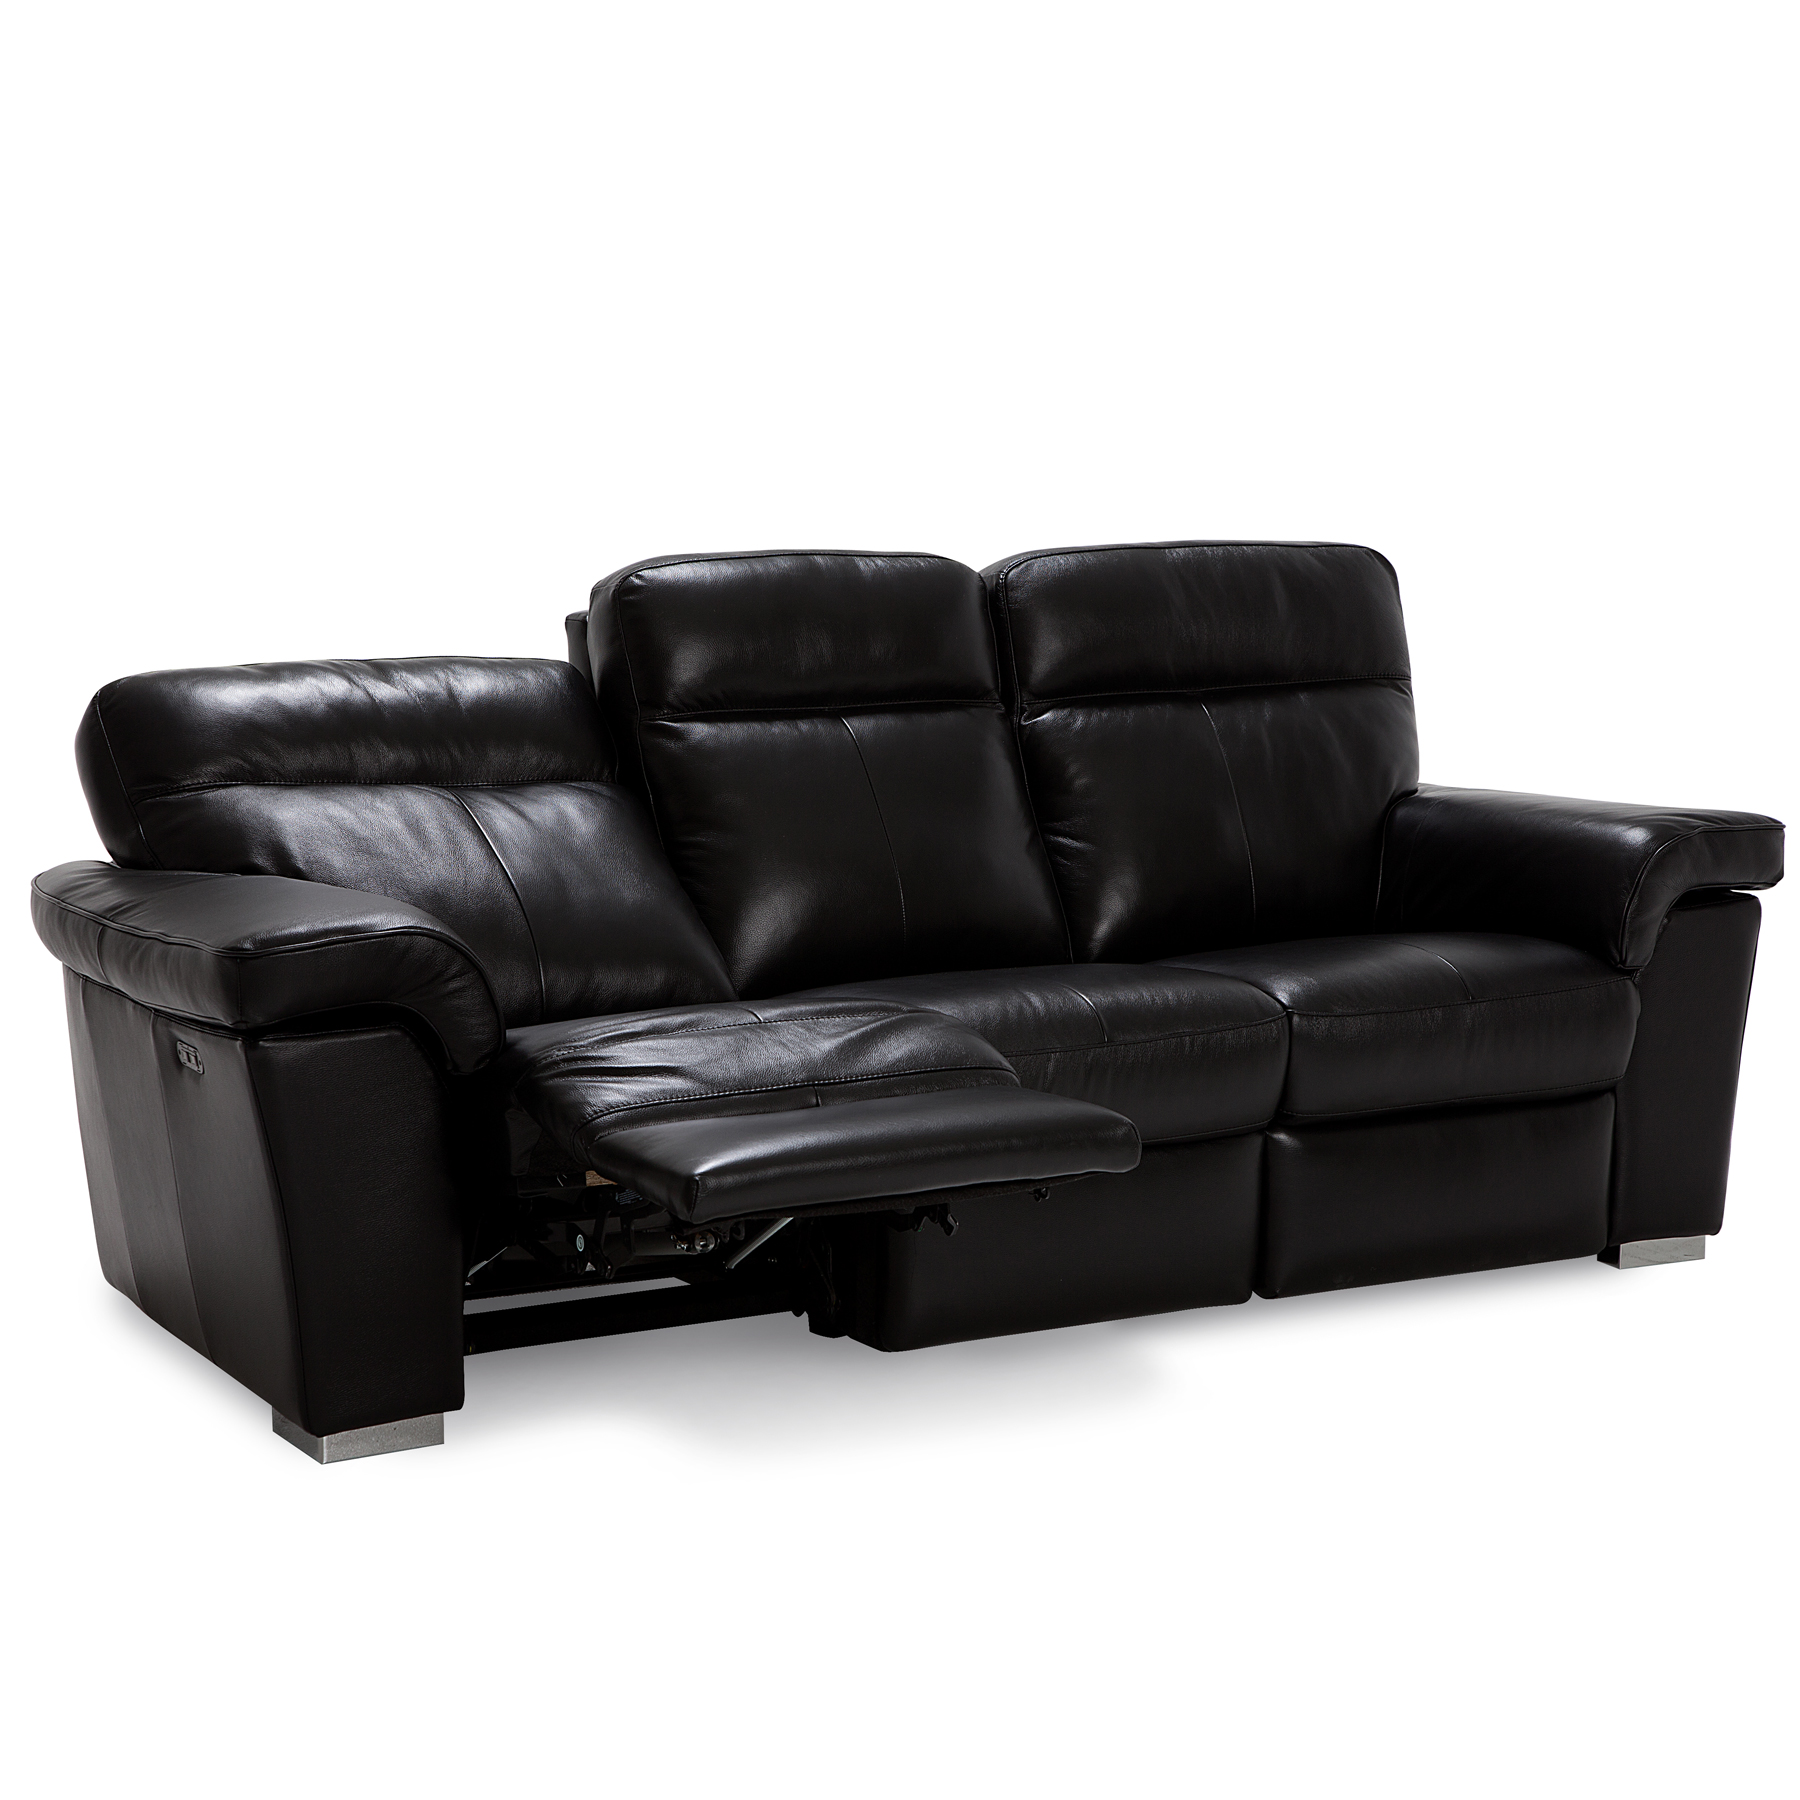 Sofa House Manufacturers Alaska 41070 Reclining Sofa W Power Recline Sofas And Sectionals